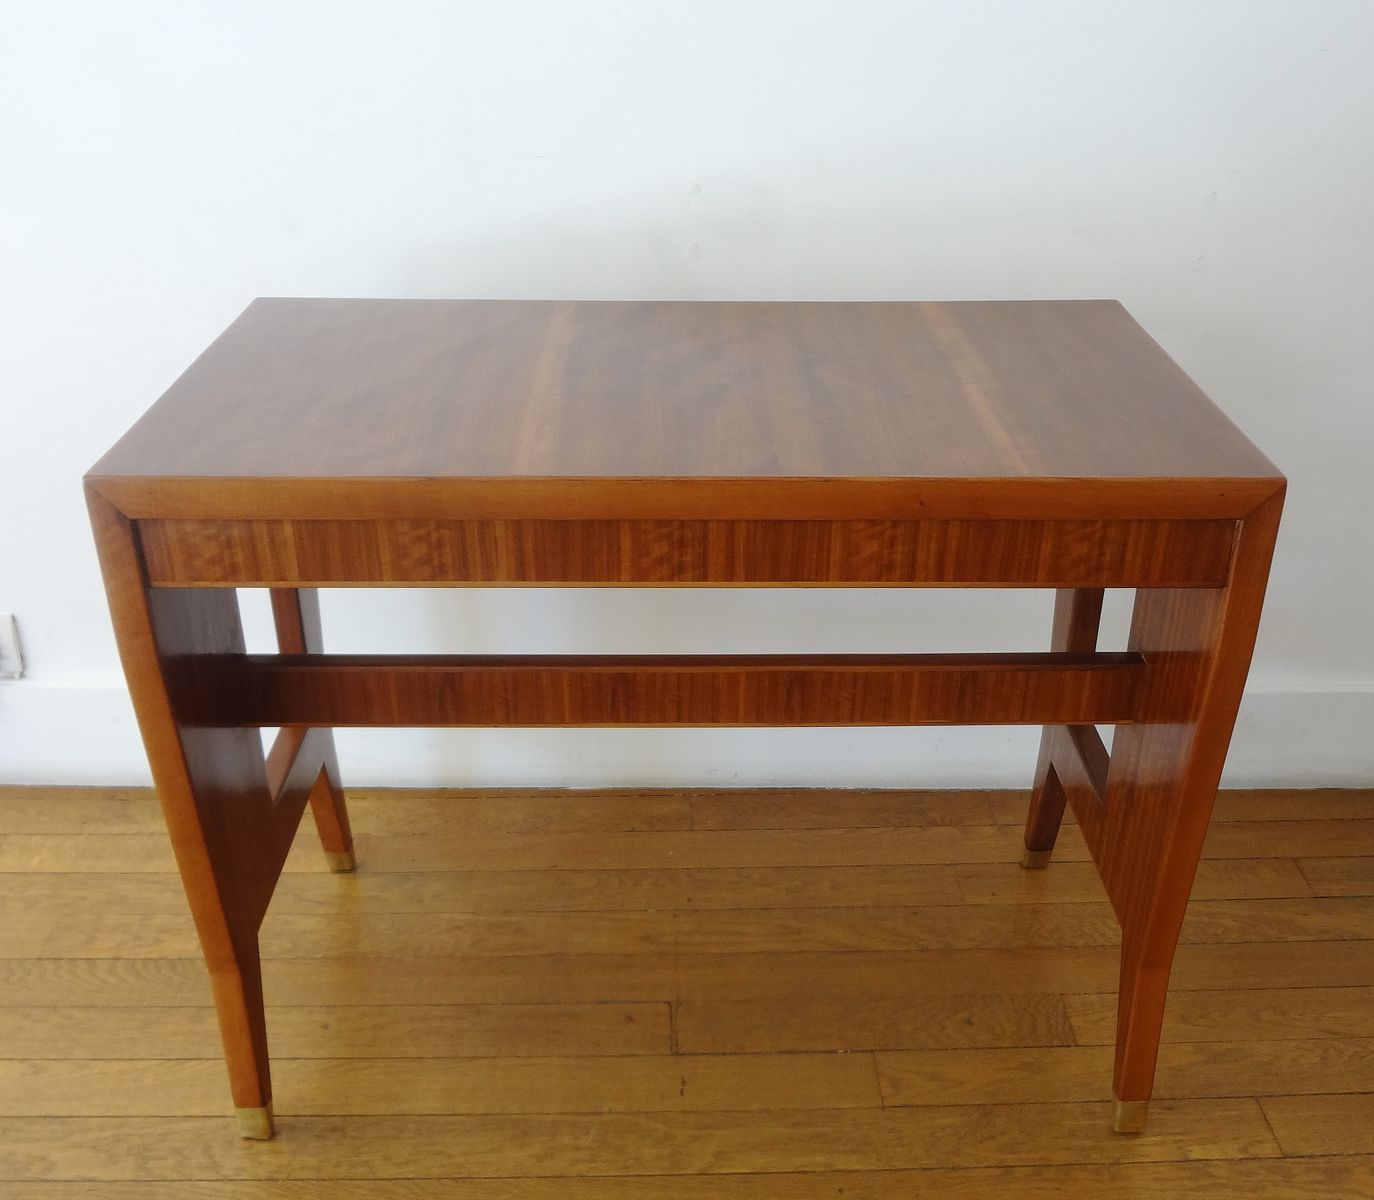 Small Vintage Desk By Gio Ponti 1955 For Sale At Pamono